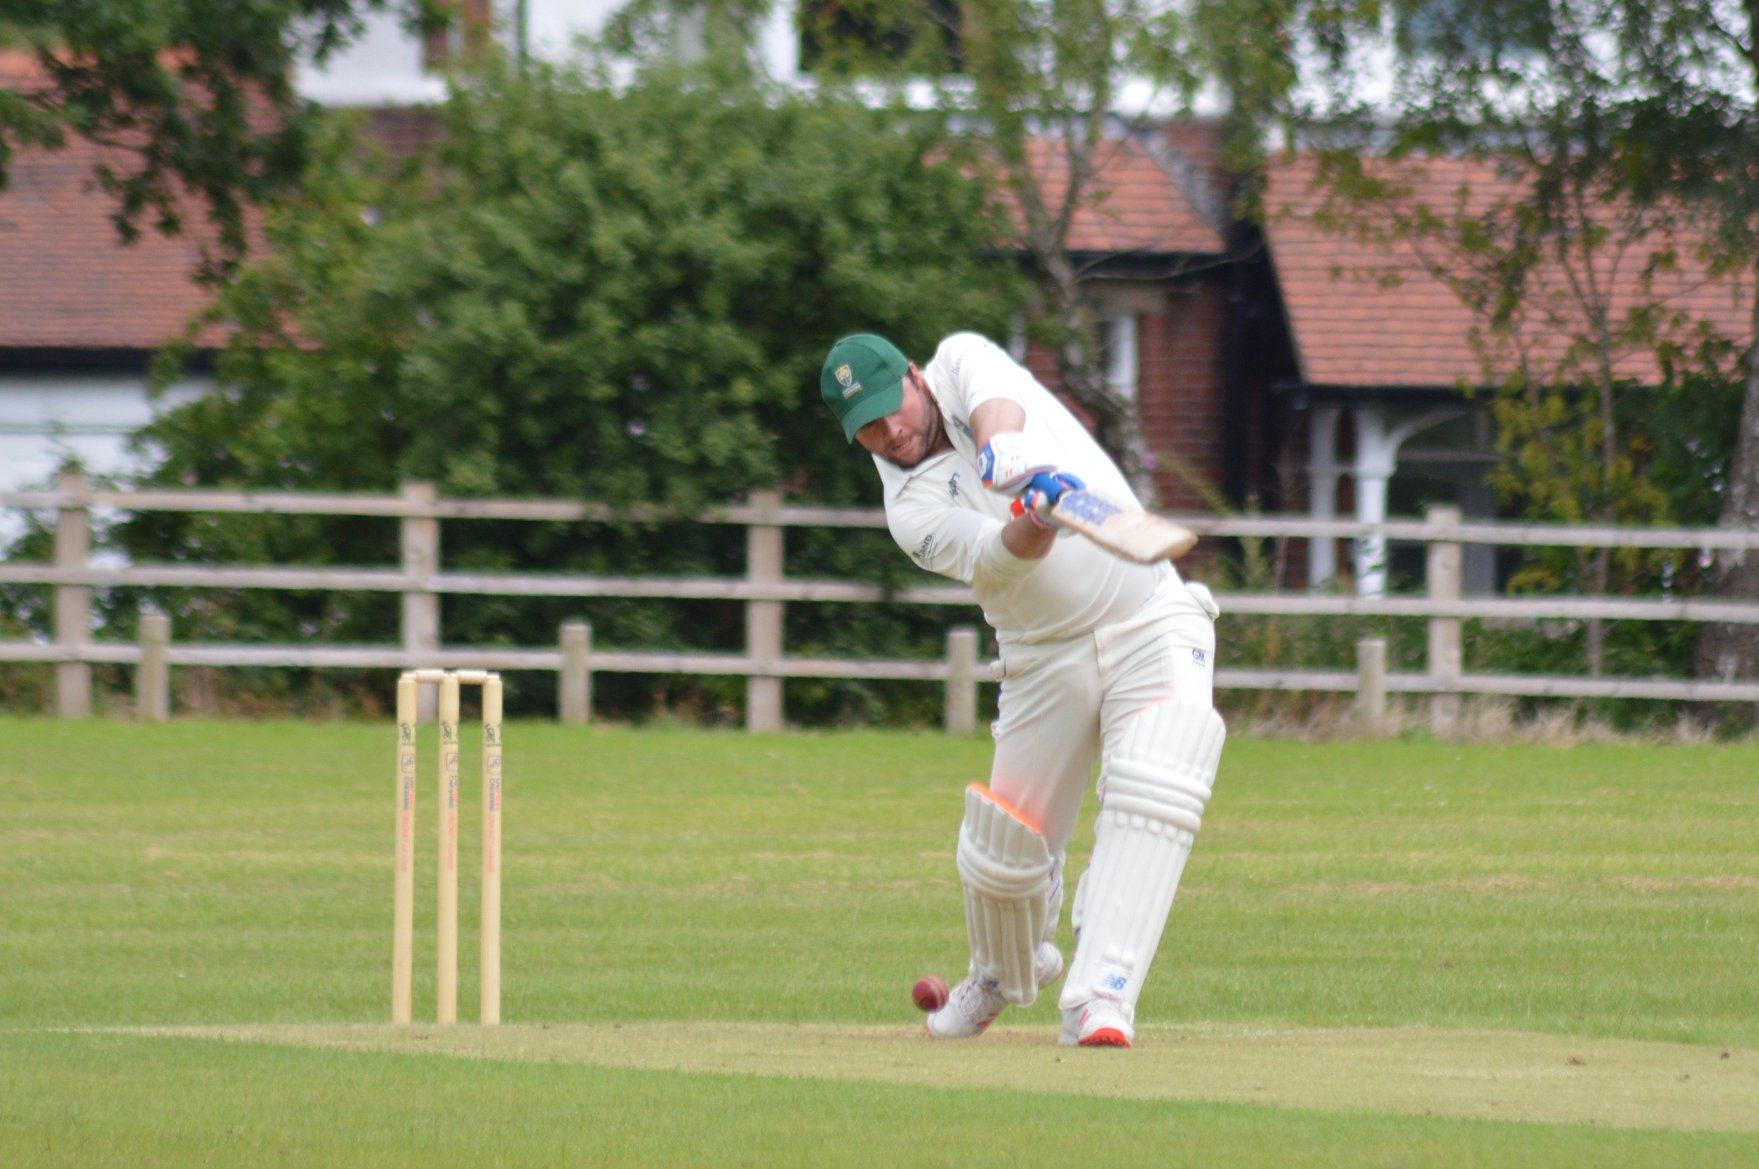 Wickets Dry Up at Barnton for 1stXI, While Table Topping Twos Left Watching On for a Third Time